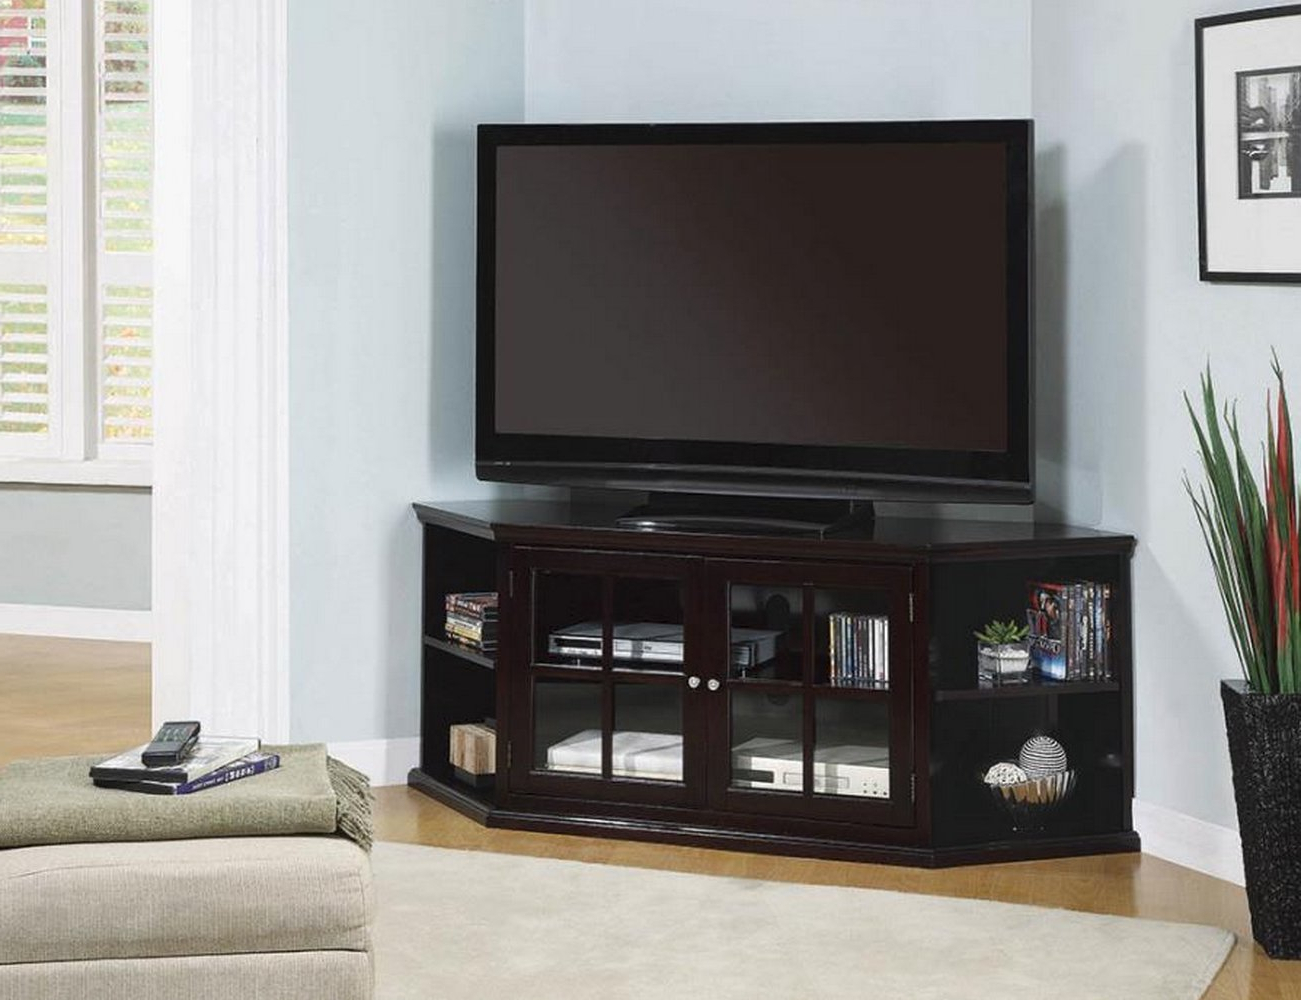 Trendy Corner Tv Stands For 60 Inch Tv For 60 69 Inch Corner Tv Stands You'll Love (View 17 of 20)